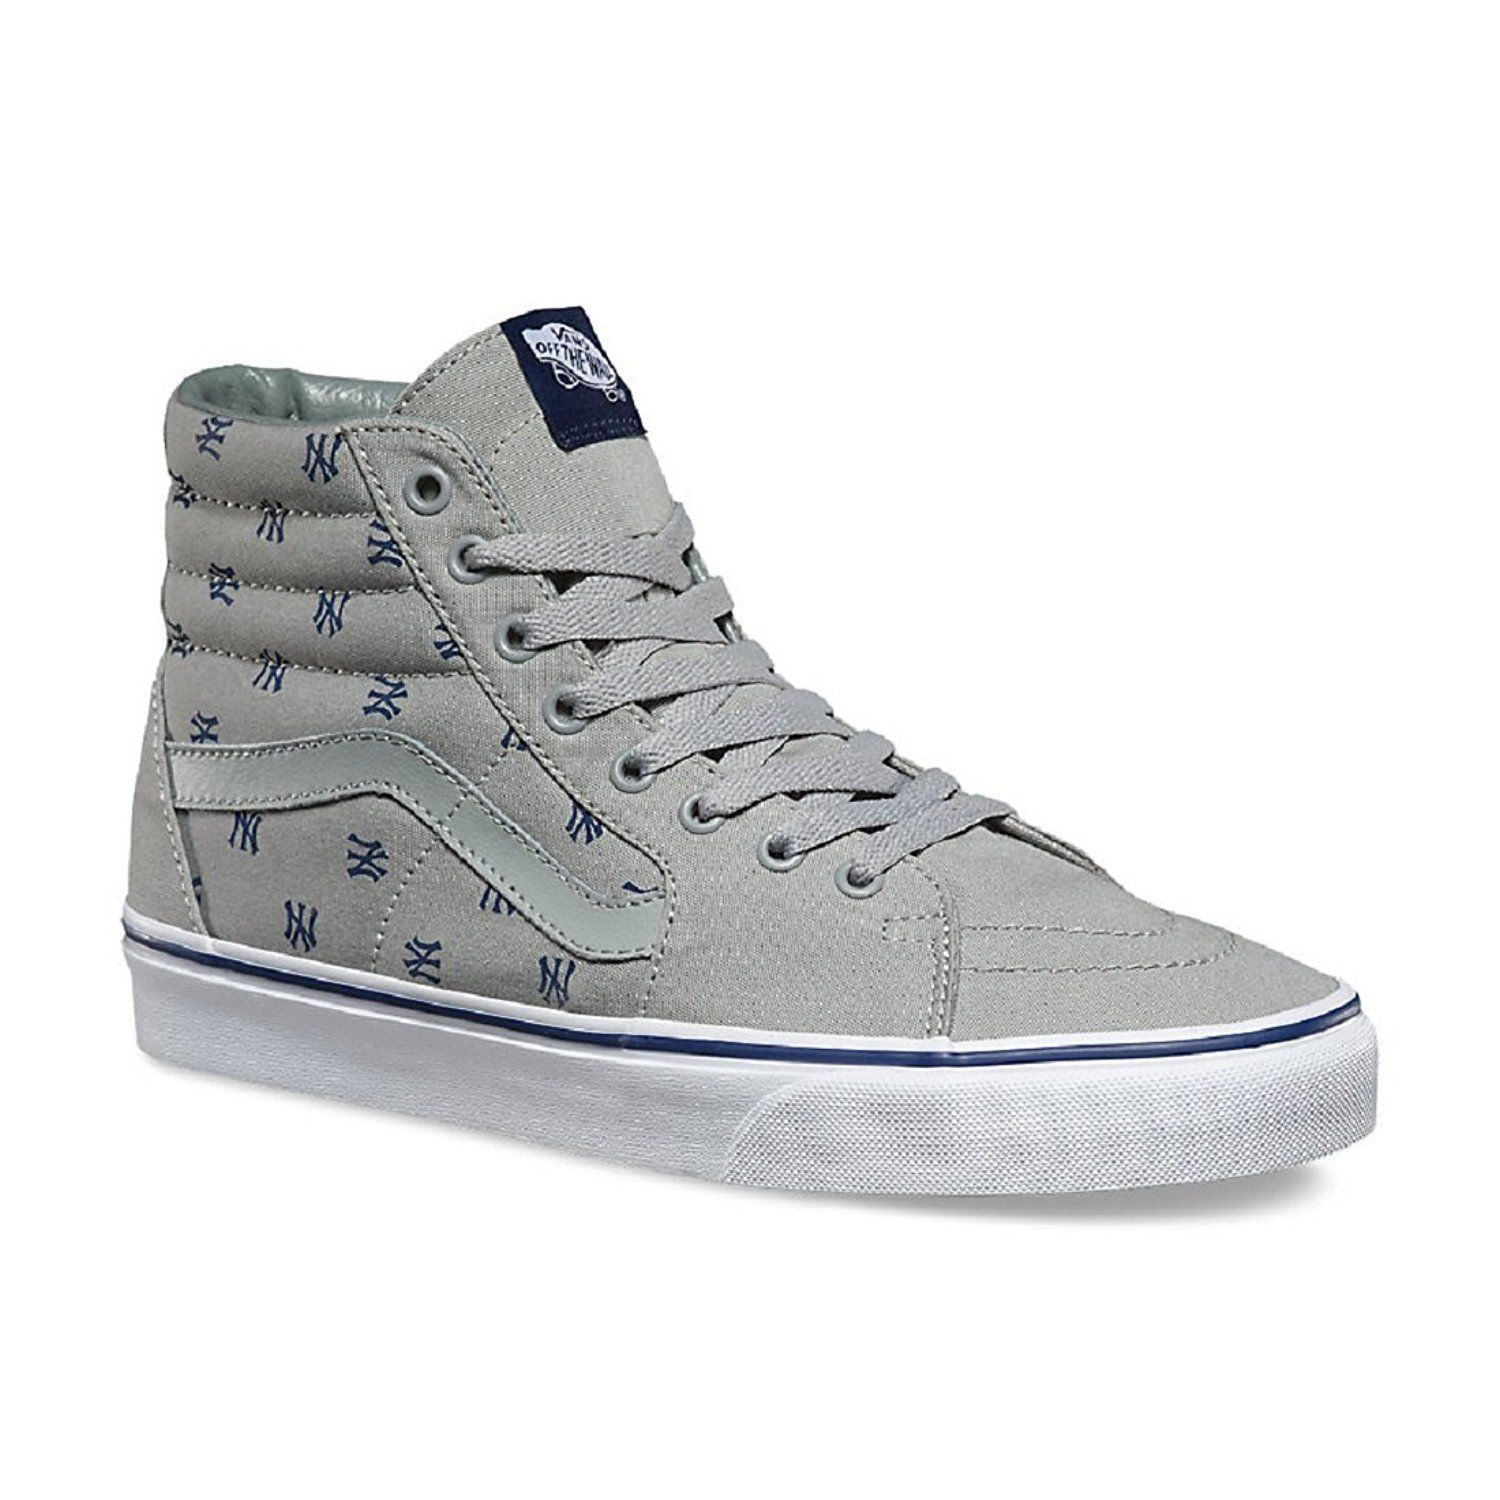 24cce21f1b4247 S l1600. S l1600. Previous. New Vans SK8 HI MLB New York Yankees Gray Mens  size 6.5 Womens 8 NIB · New ...